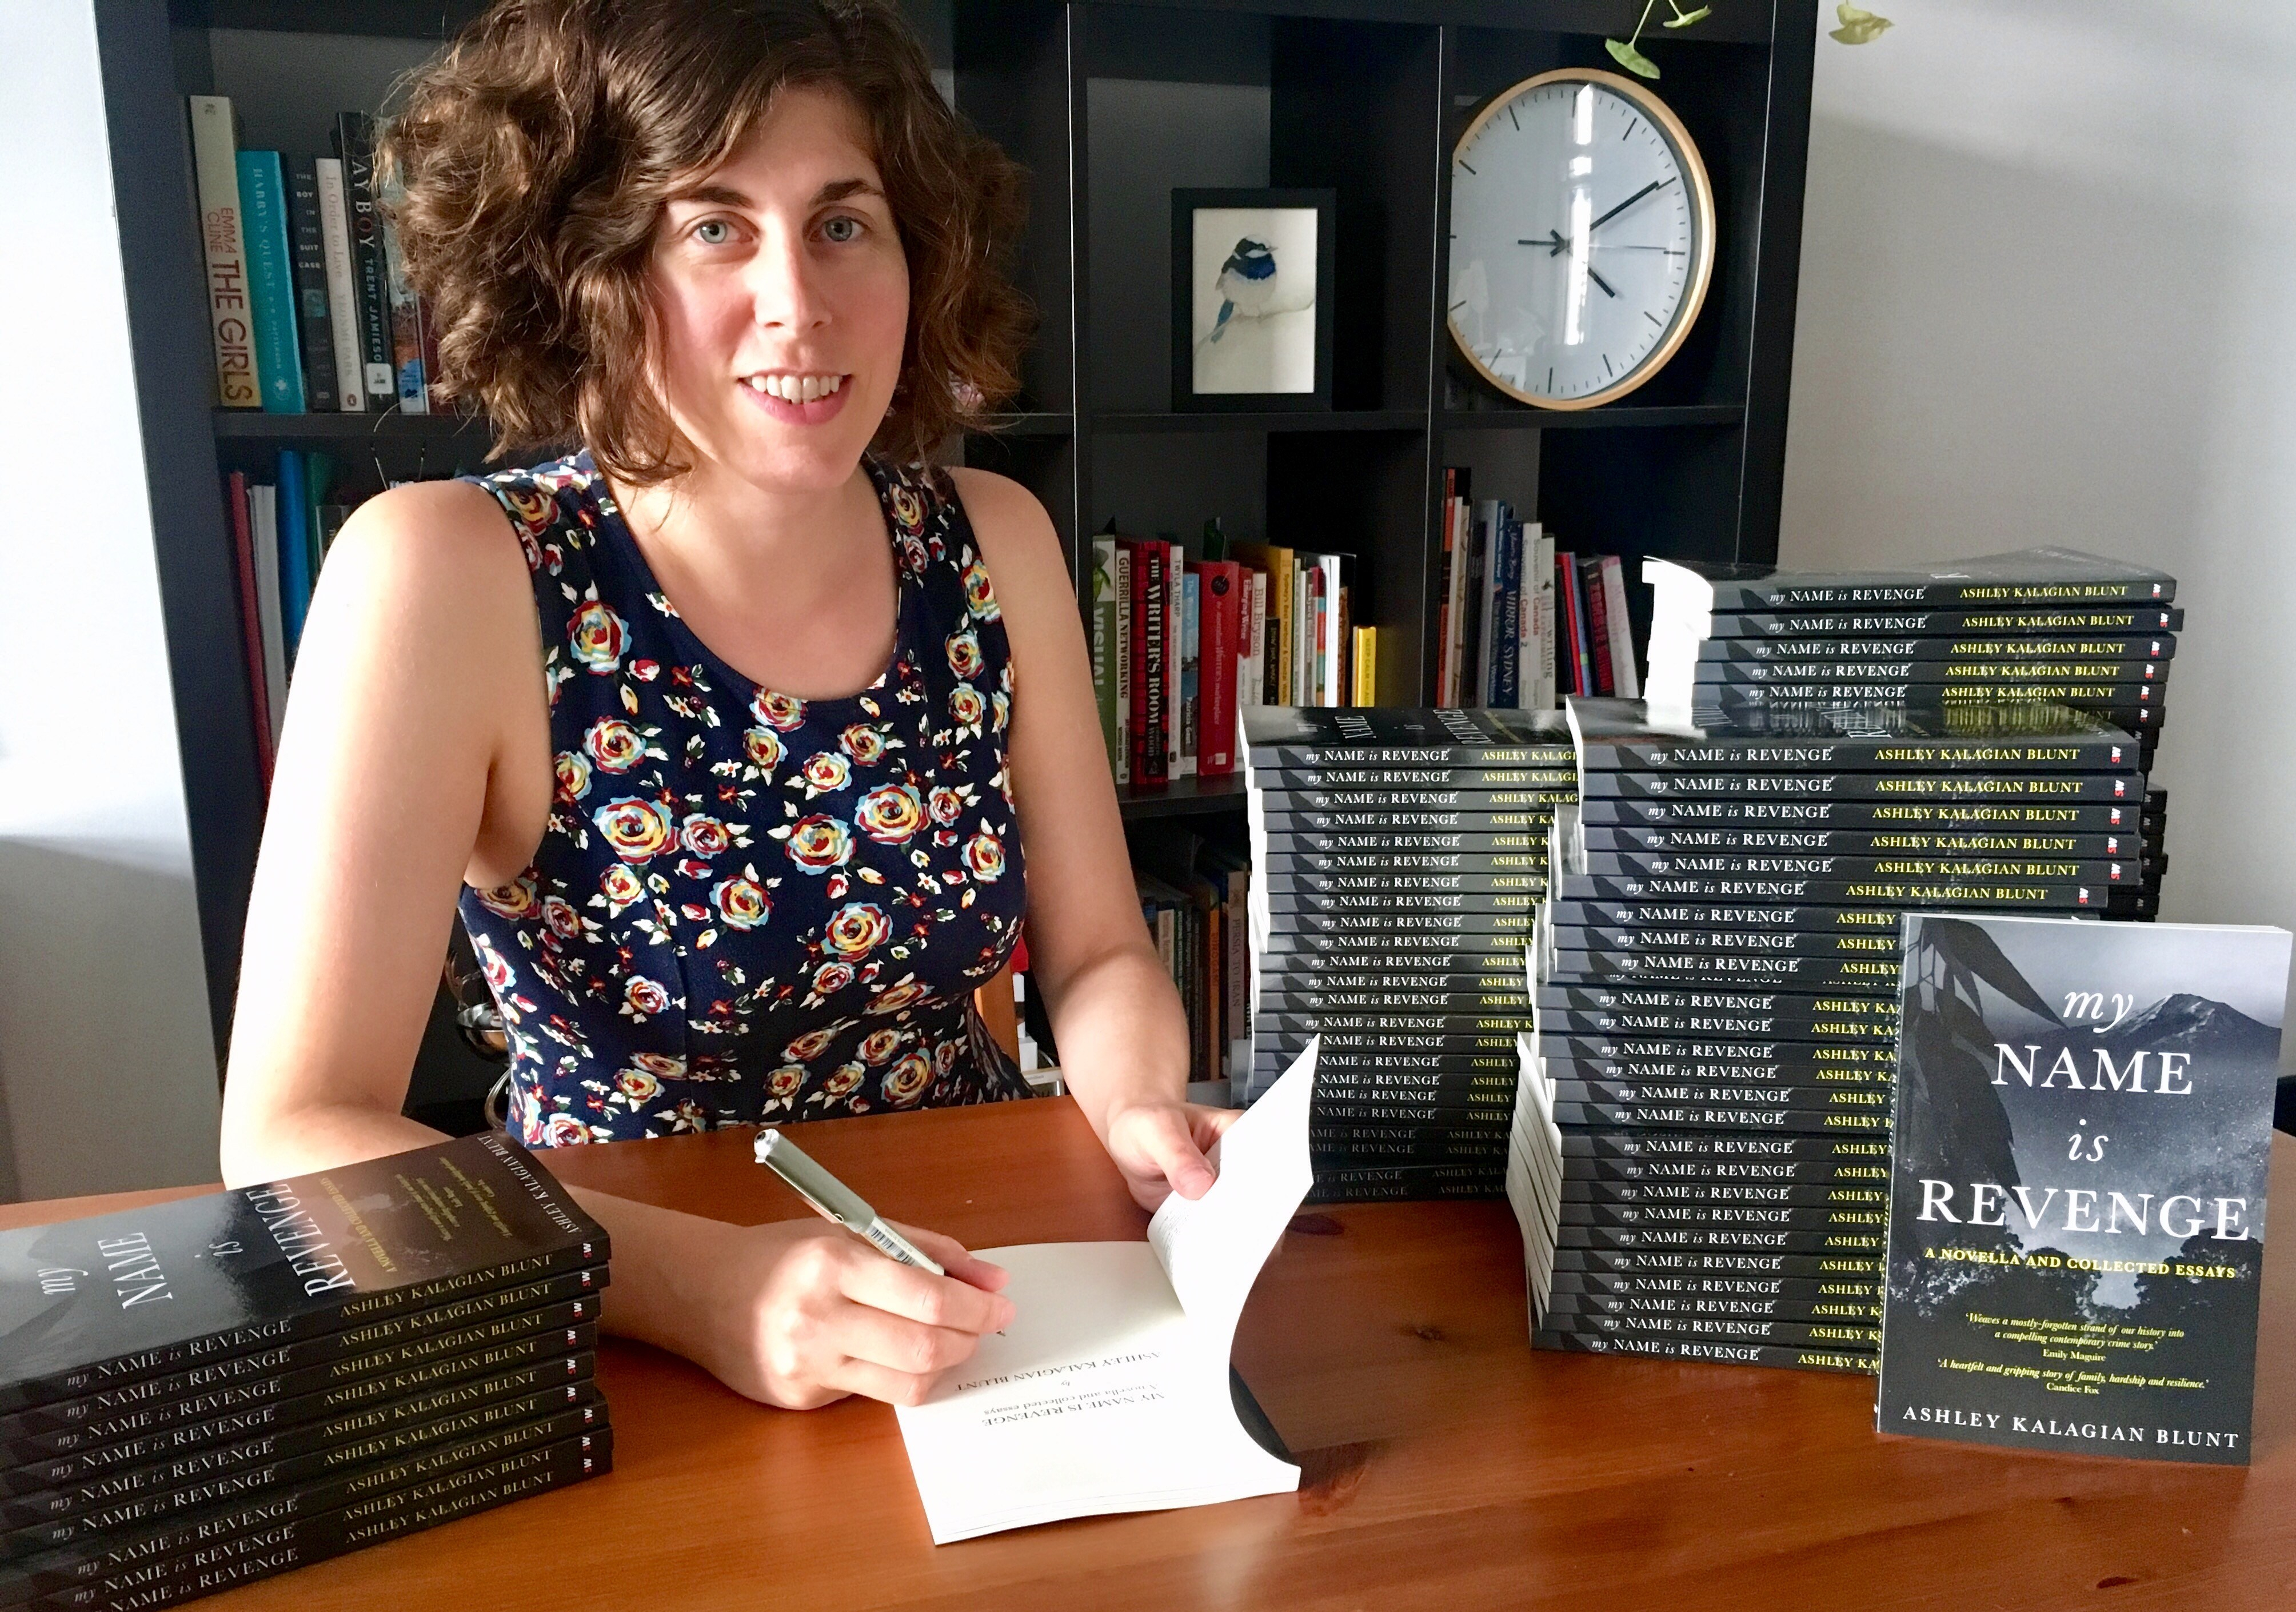 Author with stacks of books, My Name Is Revenge